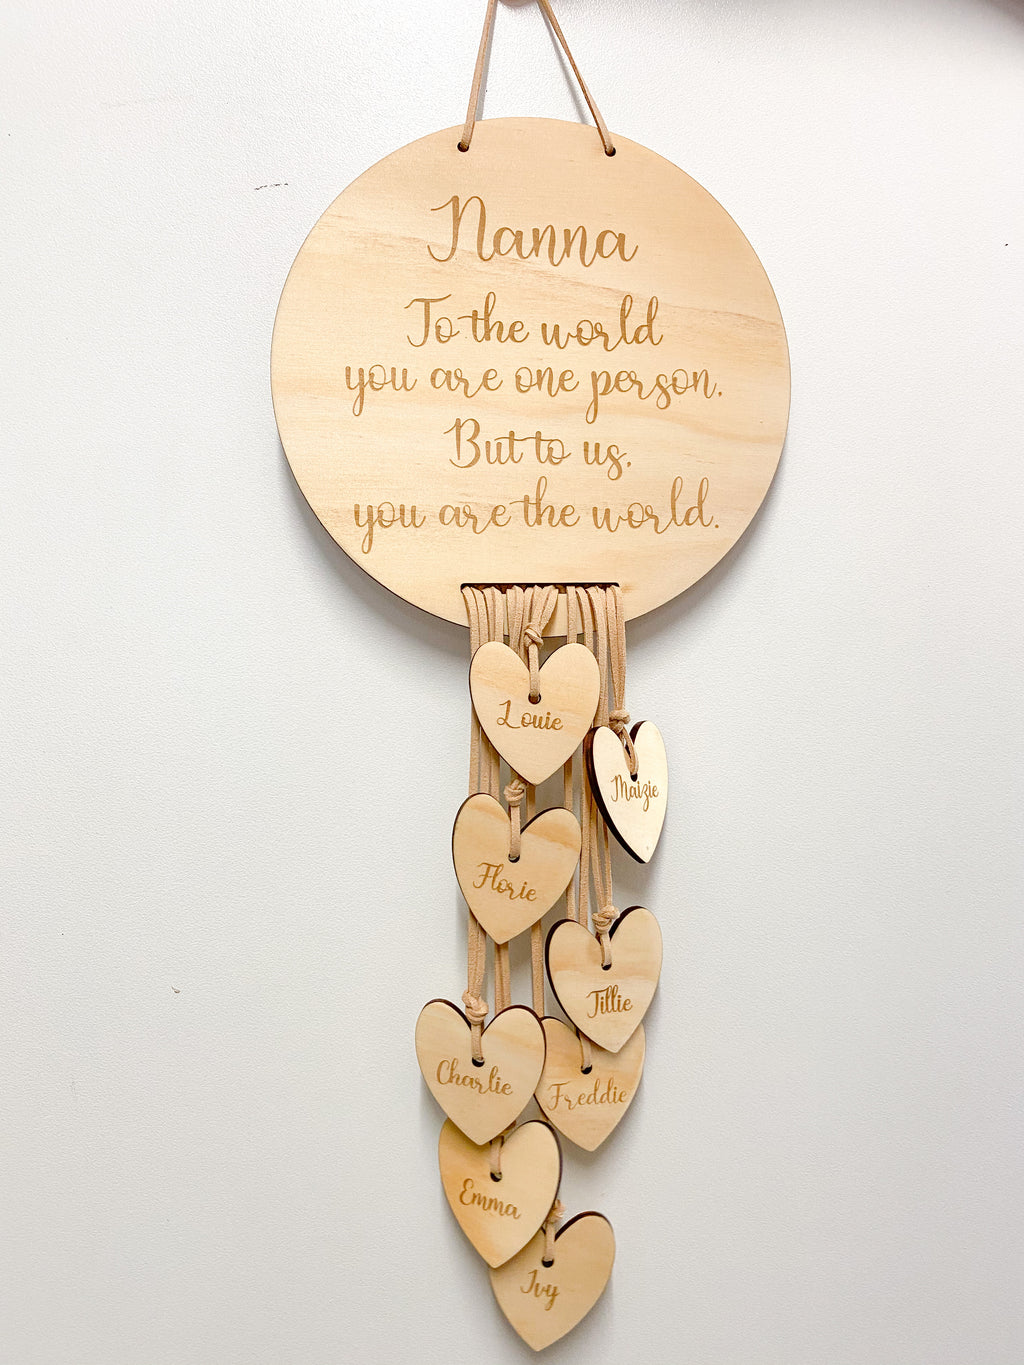 Plaque with Names in Hearts